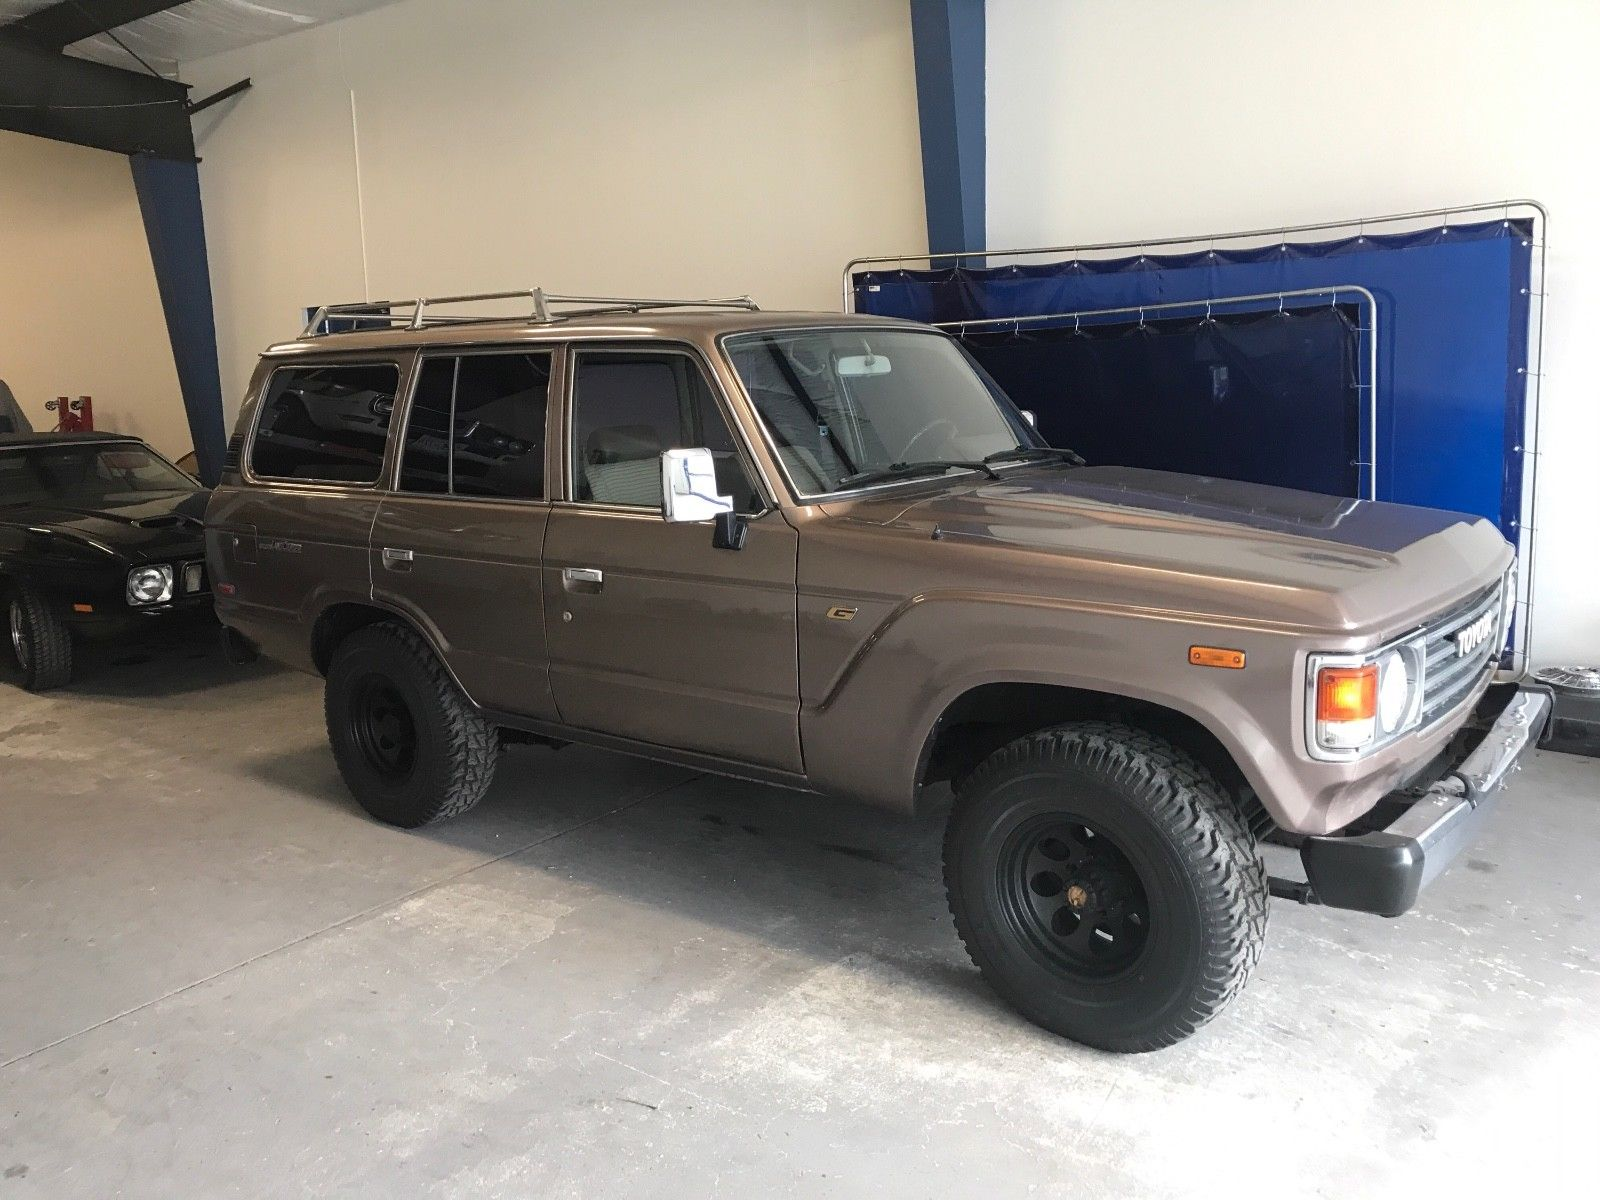 Toyota Land Cruiser Diesel >> Awesome 1987 Toyota Land Cruiser Diesel 1987 Toyota Land Cruiser Hj60 Fj60 Fj62 Diesel Auto 2017 2018